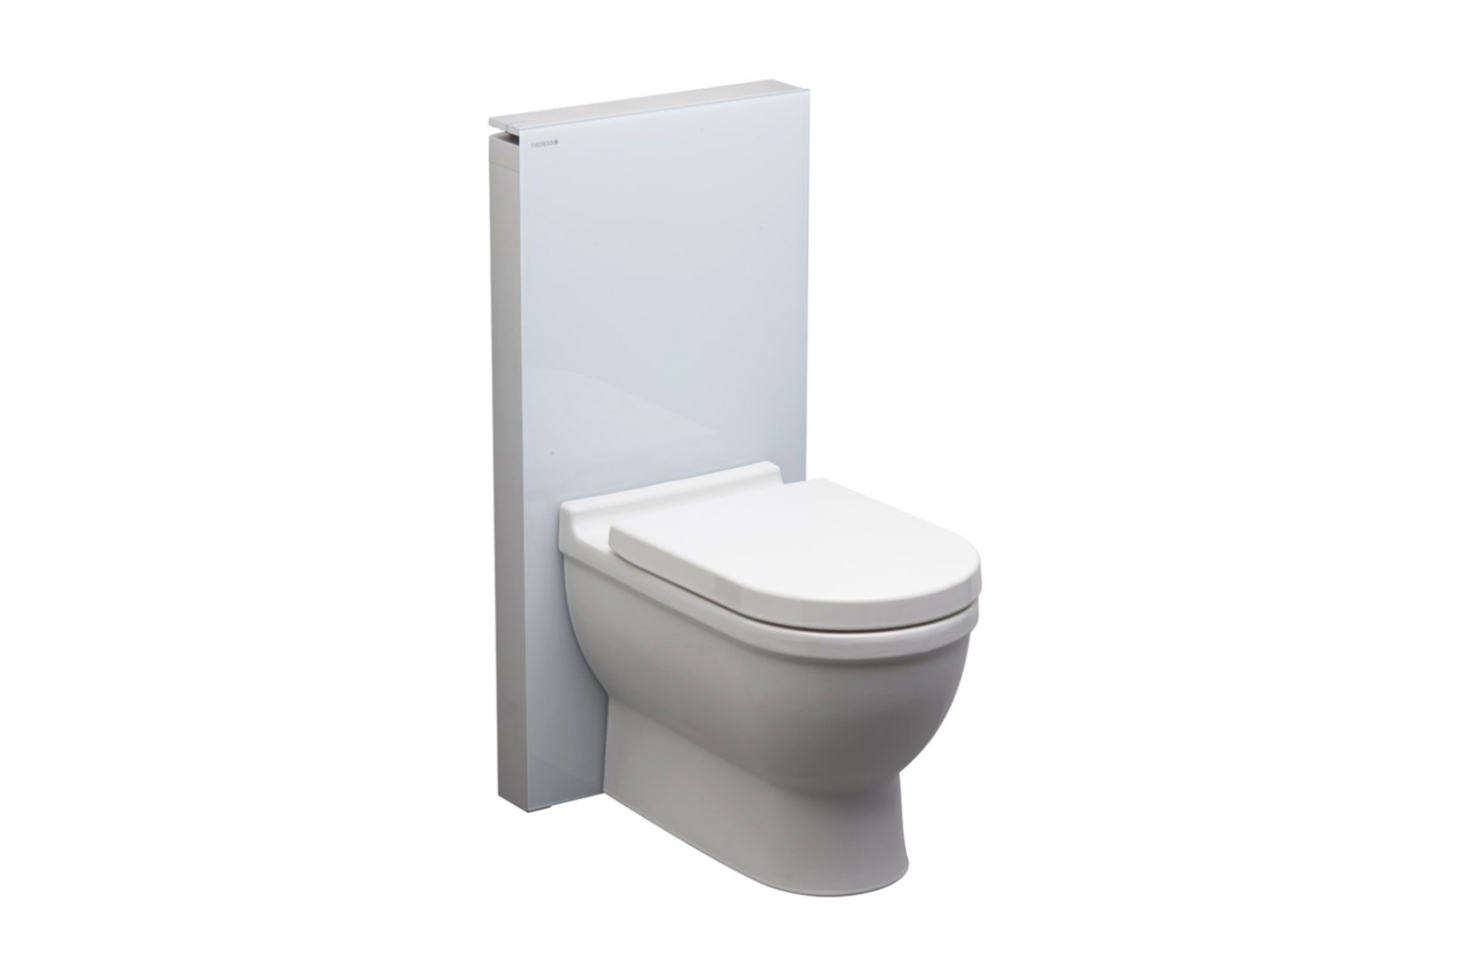 We Find The 7 Best Water-Conserving Toilets (And Stylish, Too)